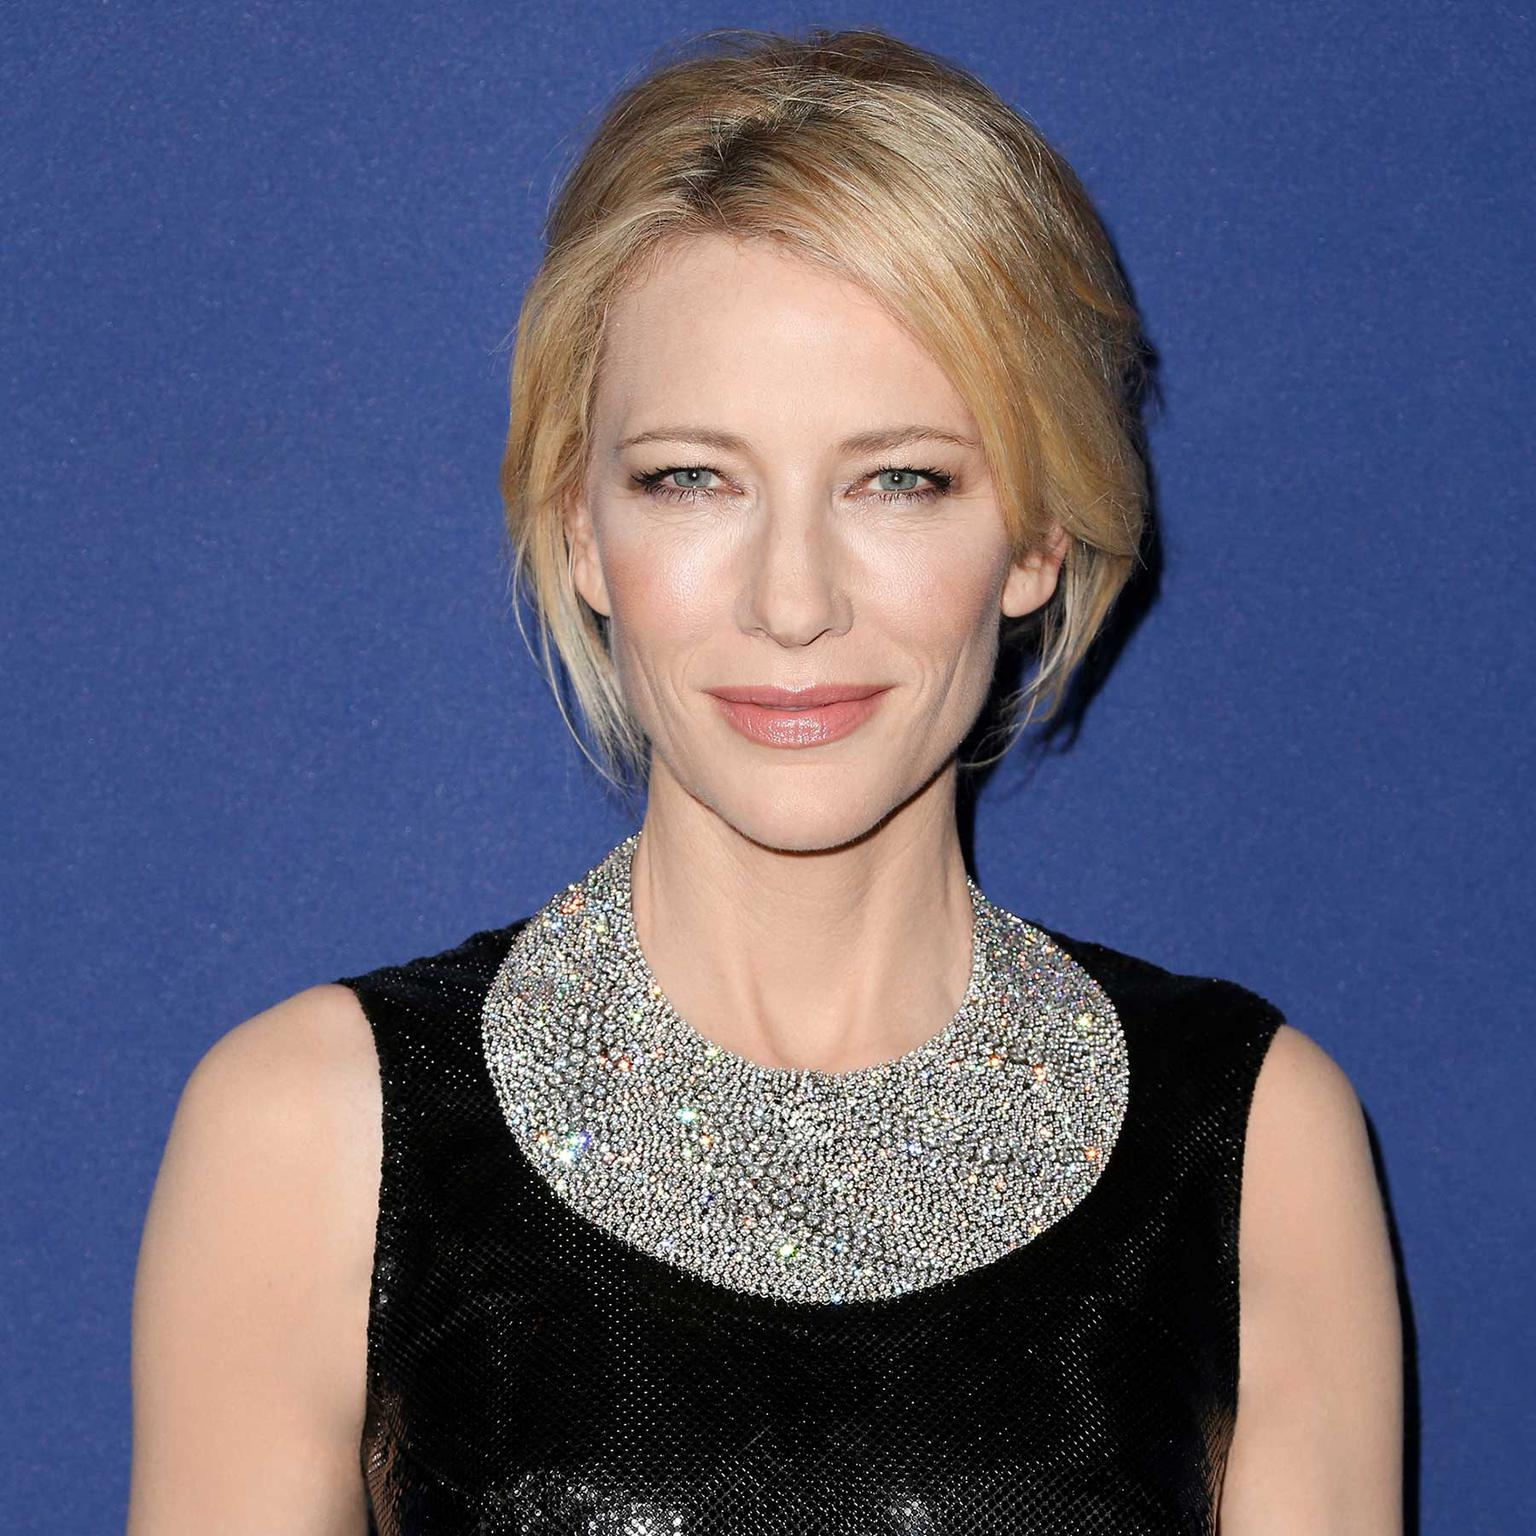 Cate Blanchett wears Tiffany Blue Book diamond bib